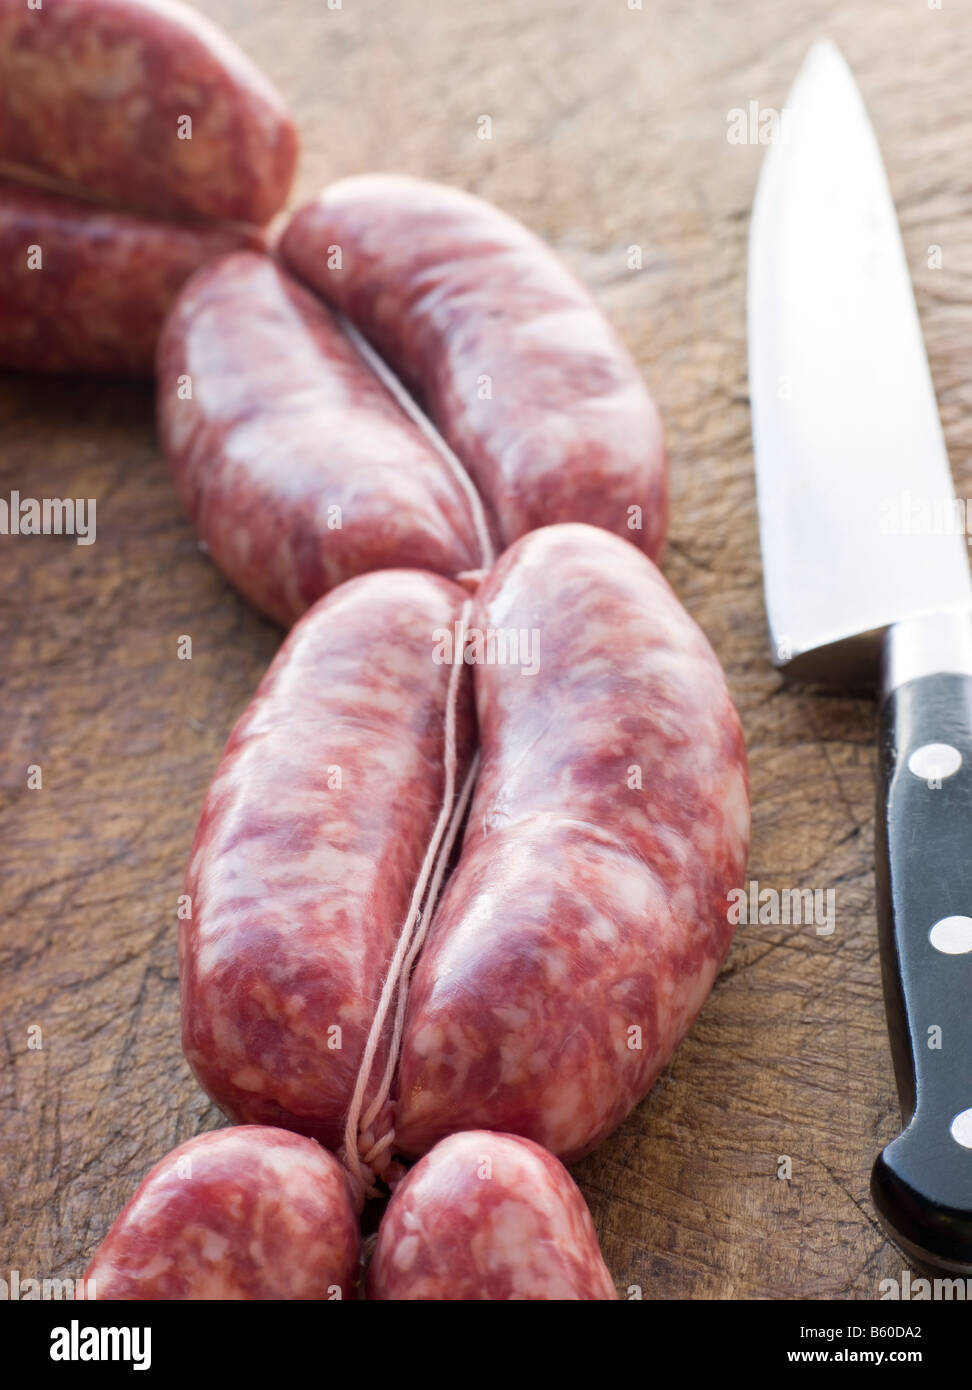 Tuscan sausage in Links Stock Photo